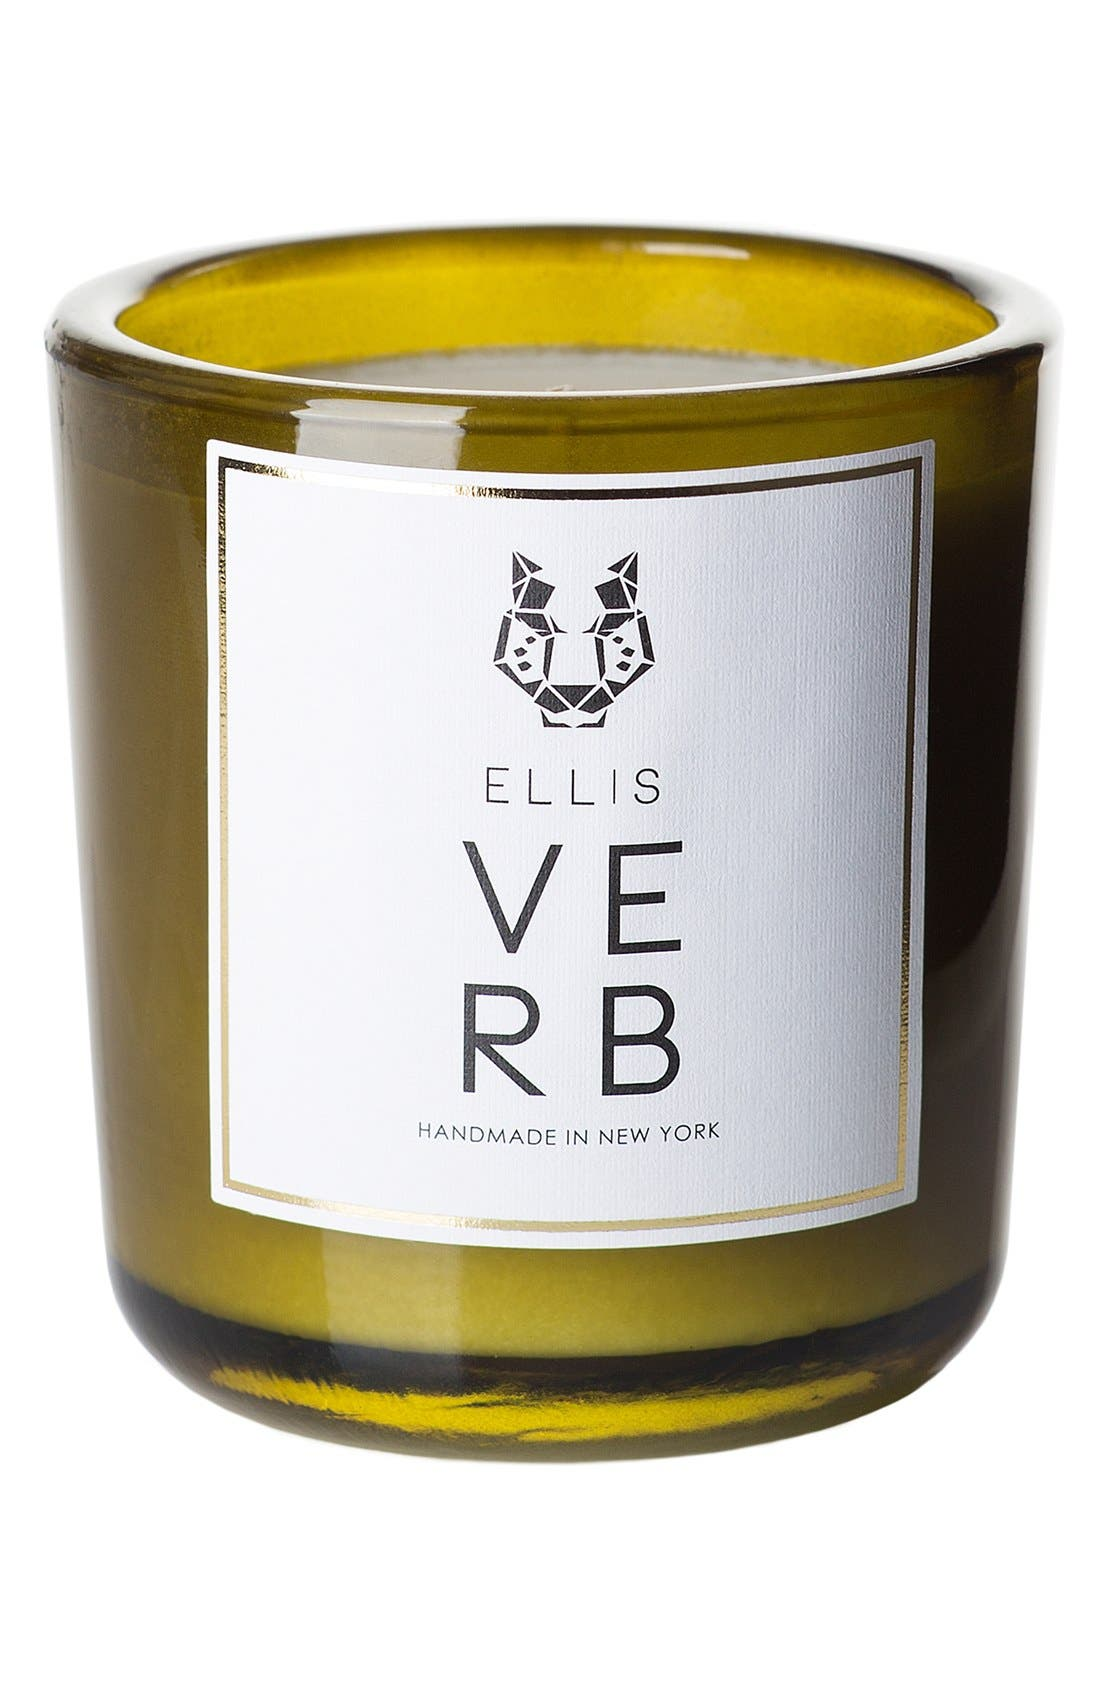 ELLIS BROOKLYN 'Verb Terrific' Scented Candle